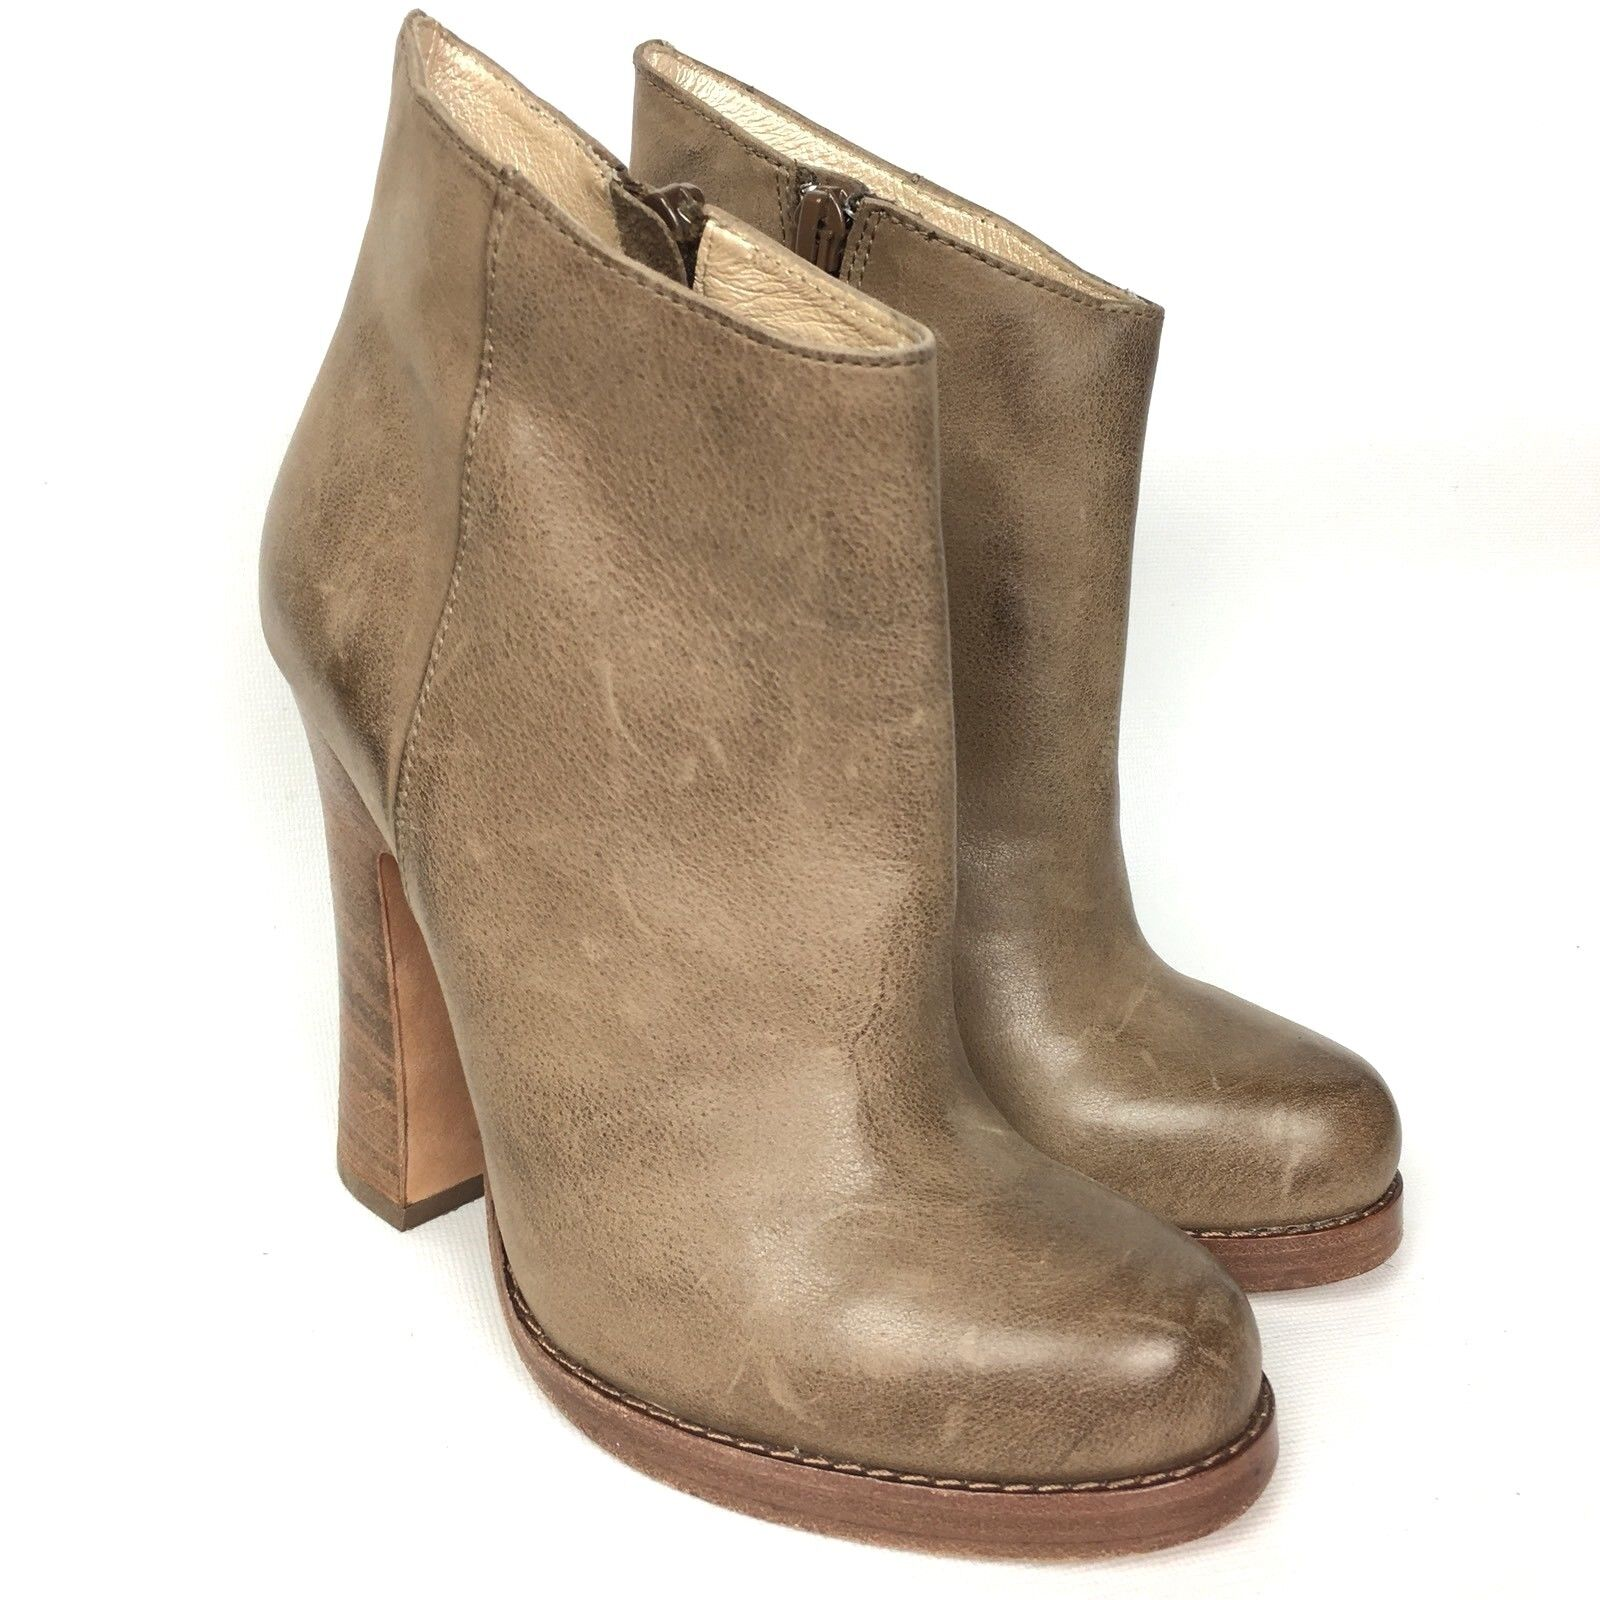 Jean-Michel Cazabat Leather Ankle Boots shoes Zip Heeled Sz 5 35